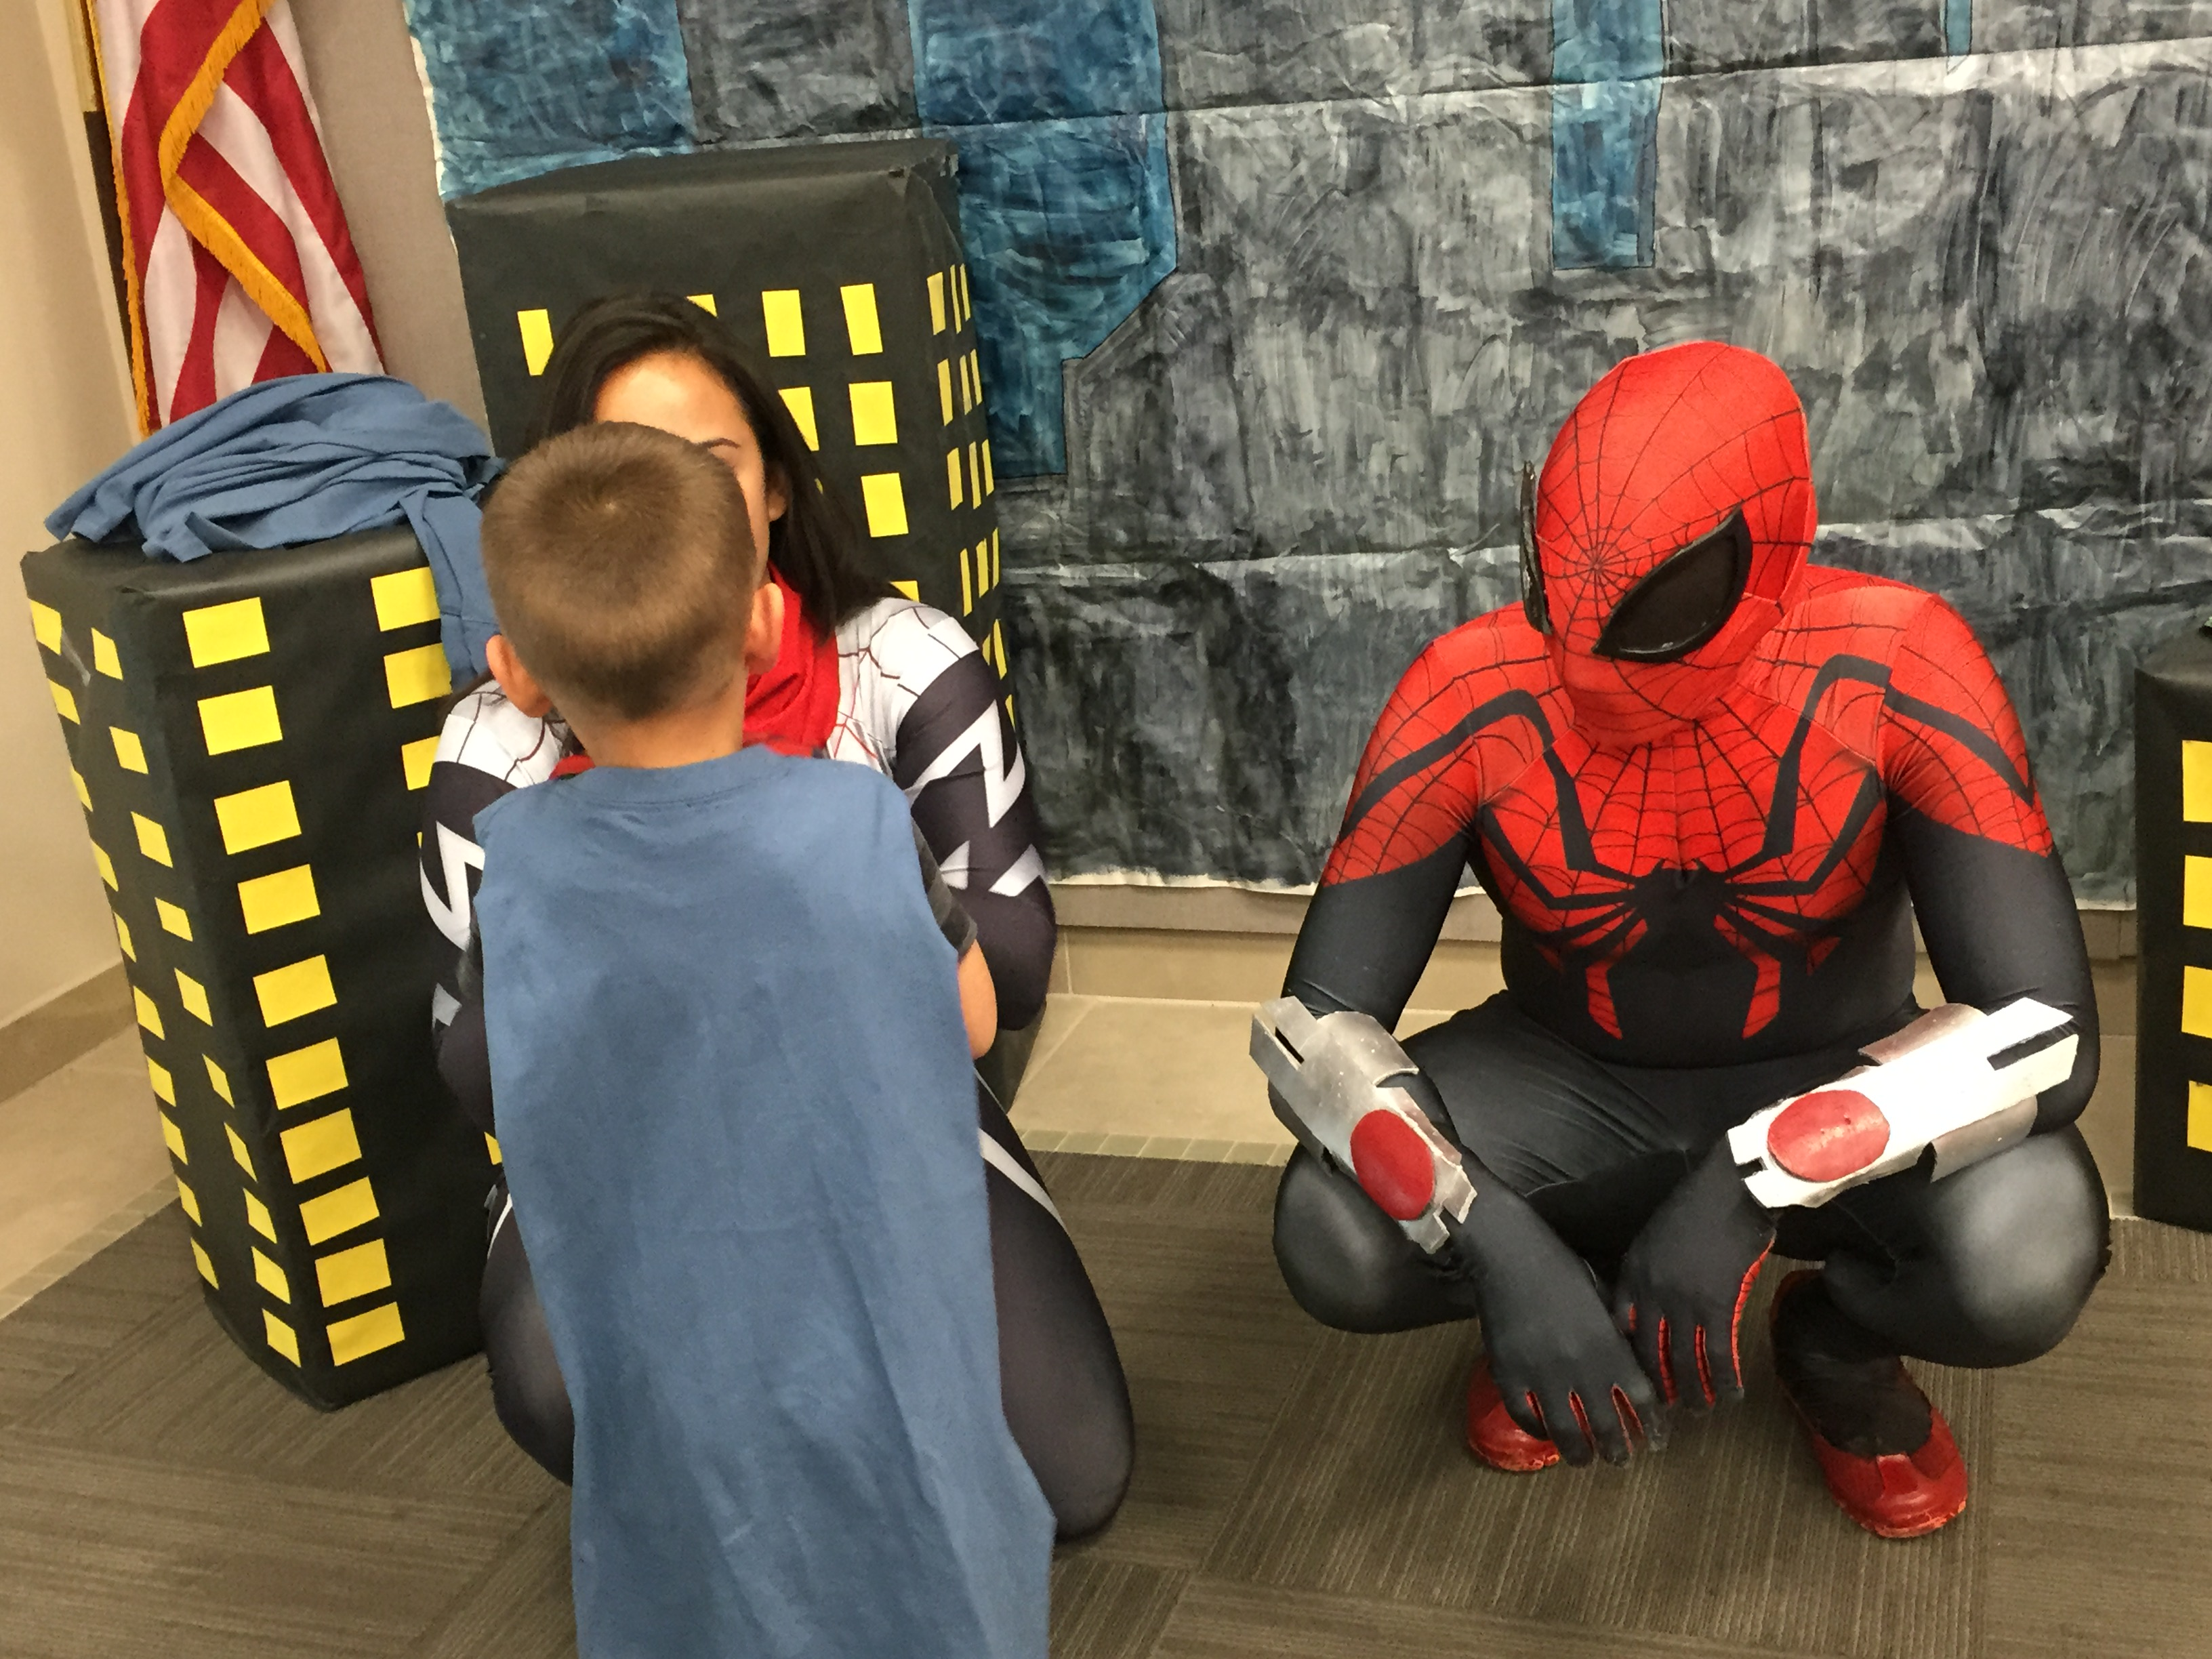 My favorite thing about my job is that I get to dress up as Spiderman and kids will look up to me, give me high fives, and talk to me as if I were Spi